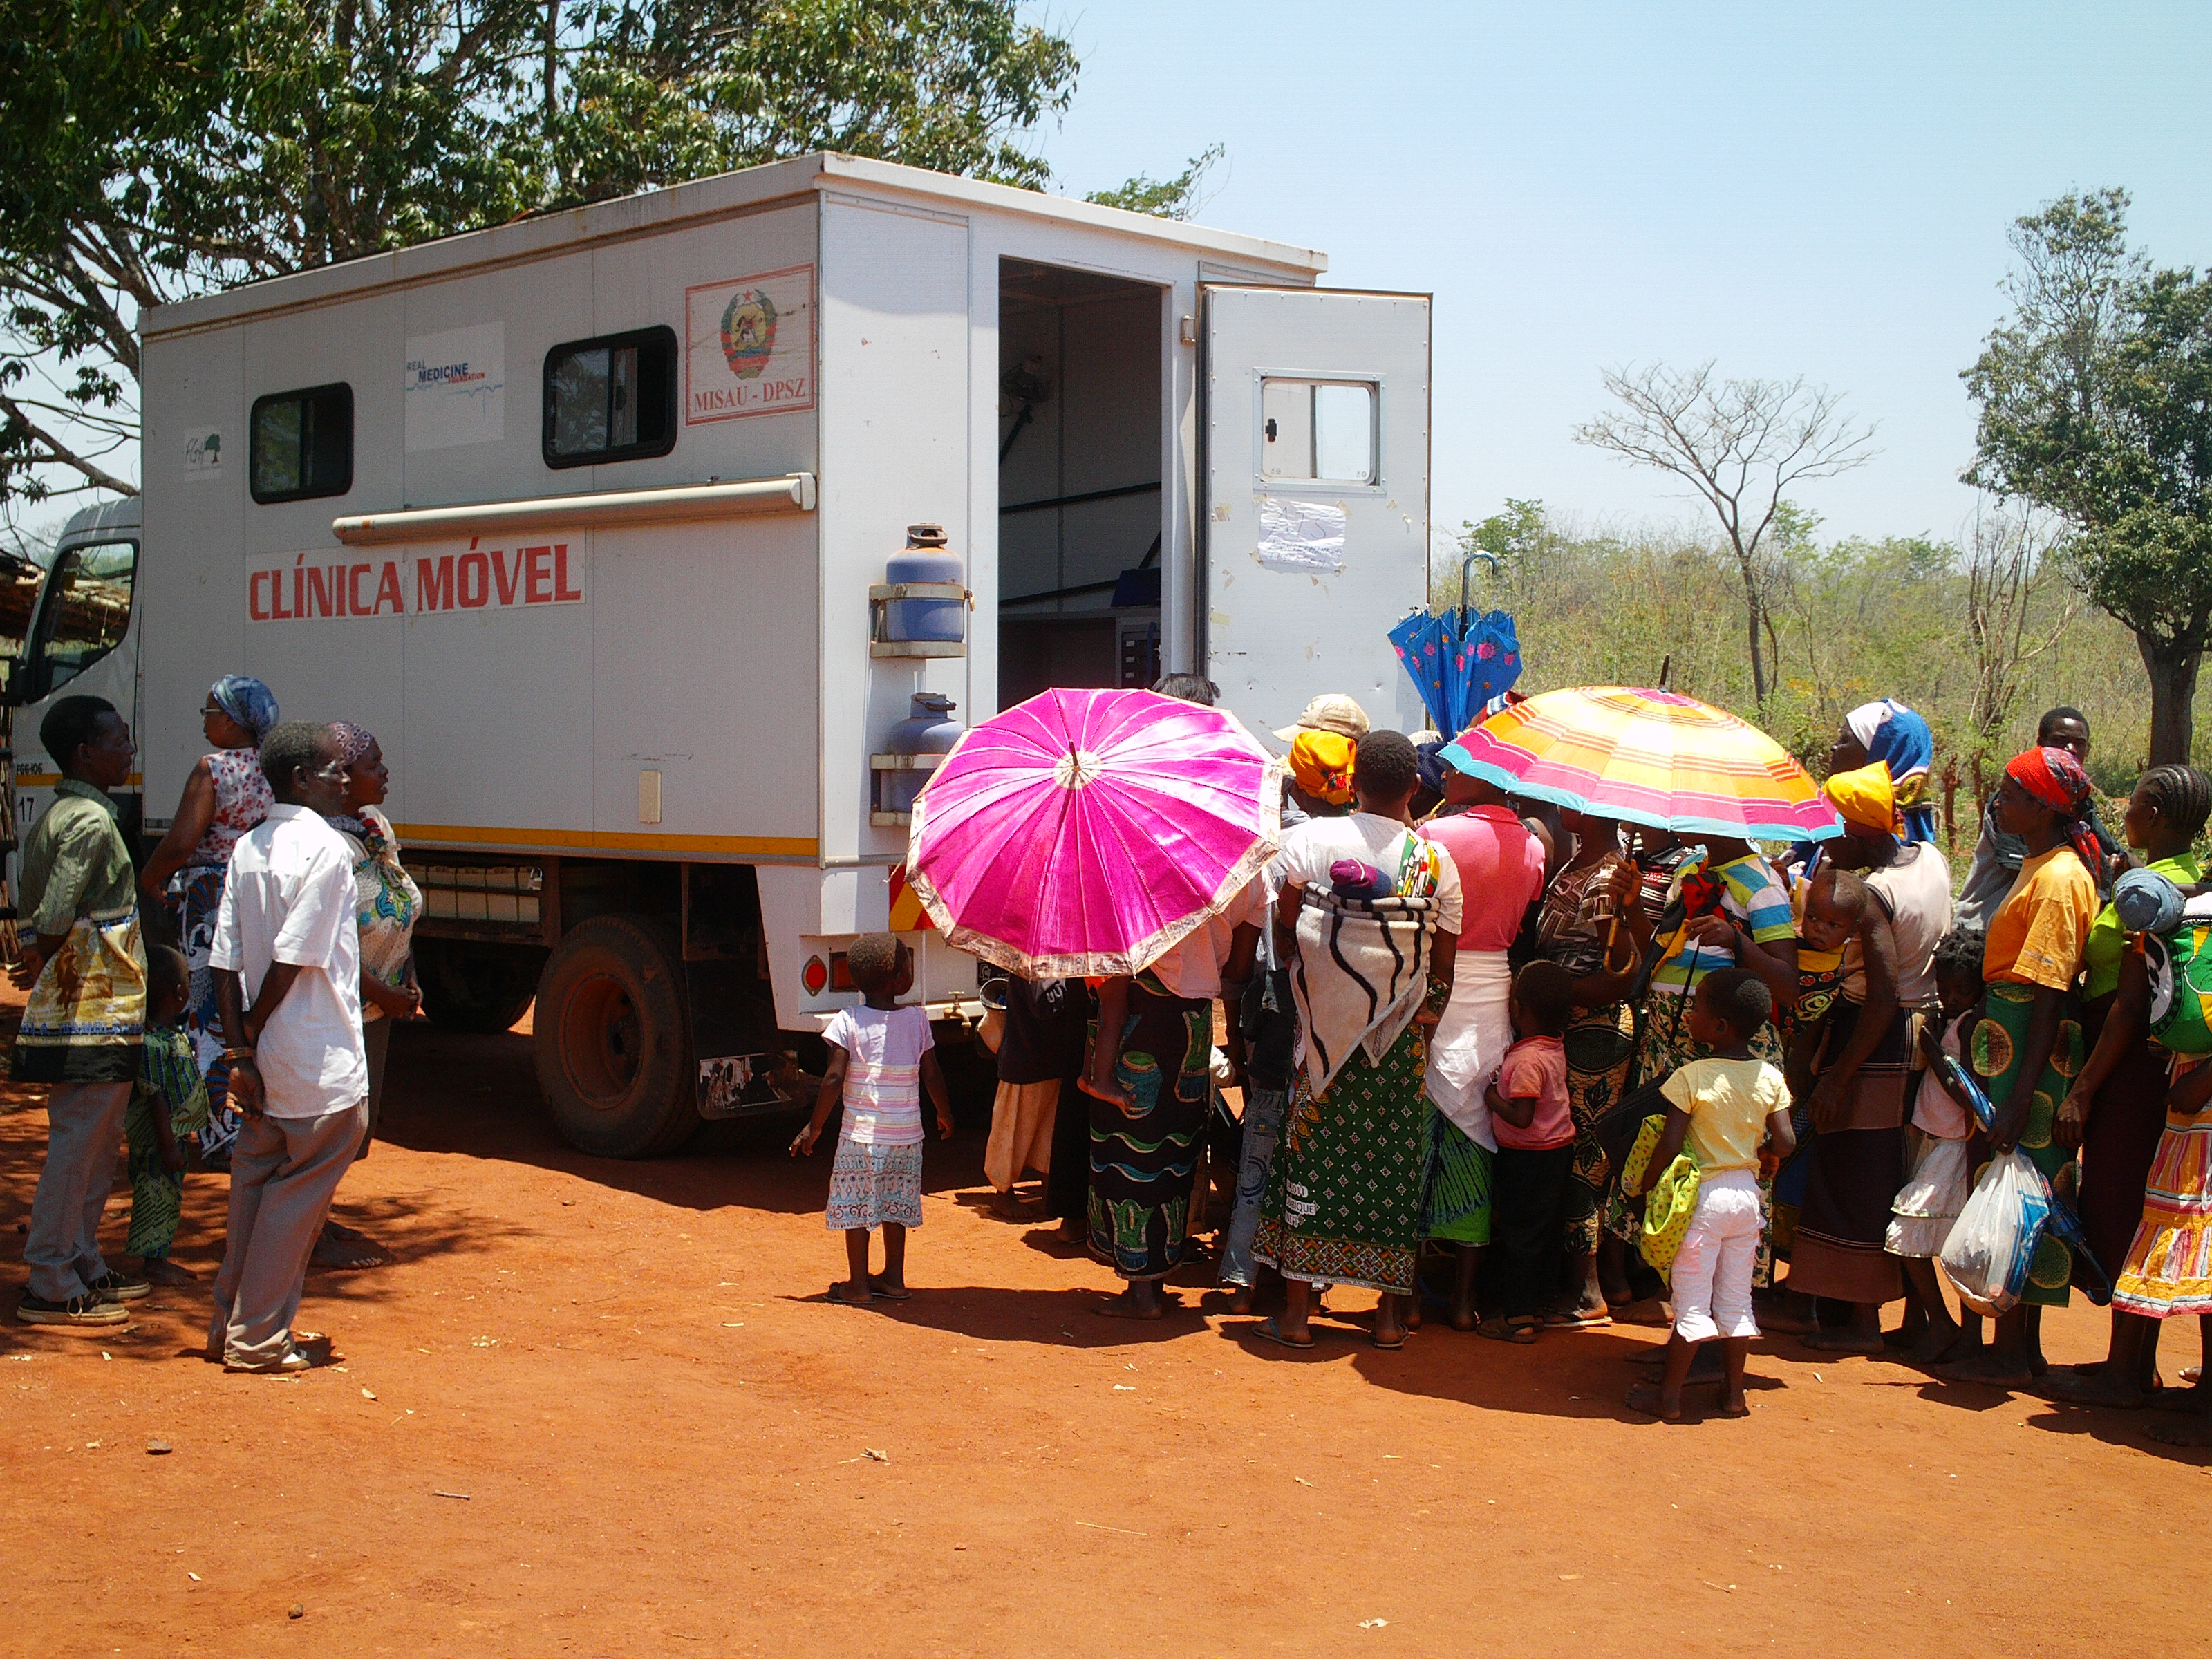 Mobile clinic in Mozambique (Photo courtesy of RealMedicineFoundation.org)